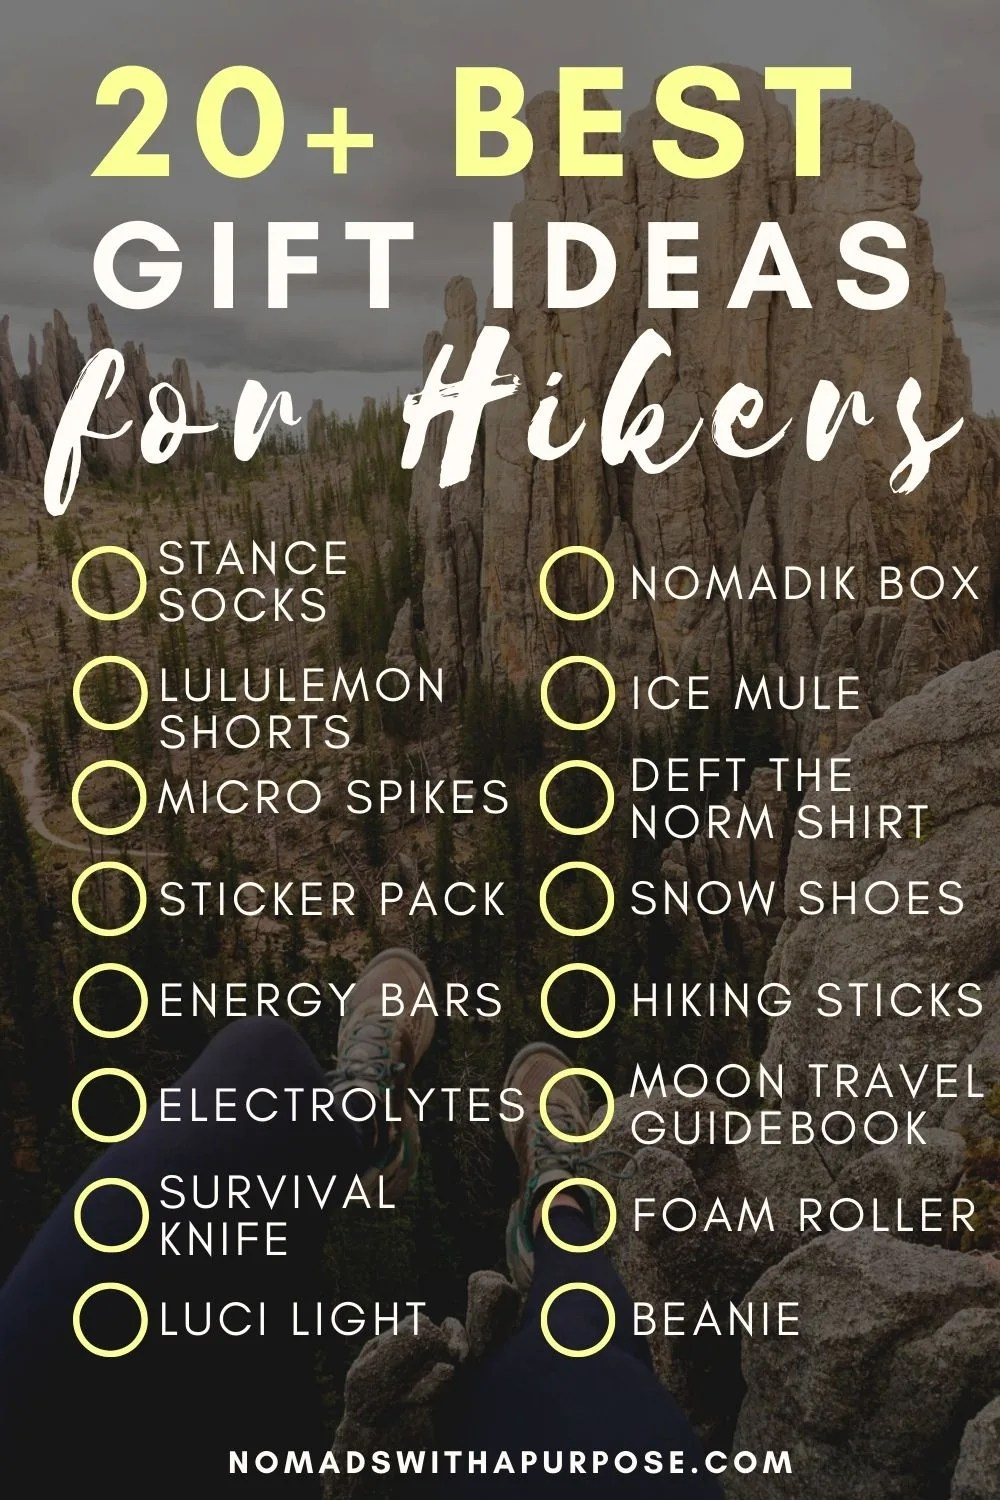 20+ Gift ideas for Hikers